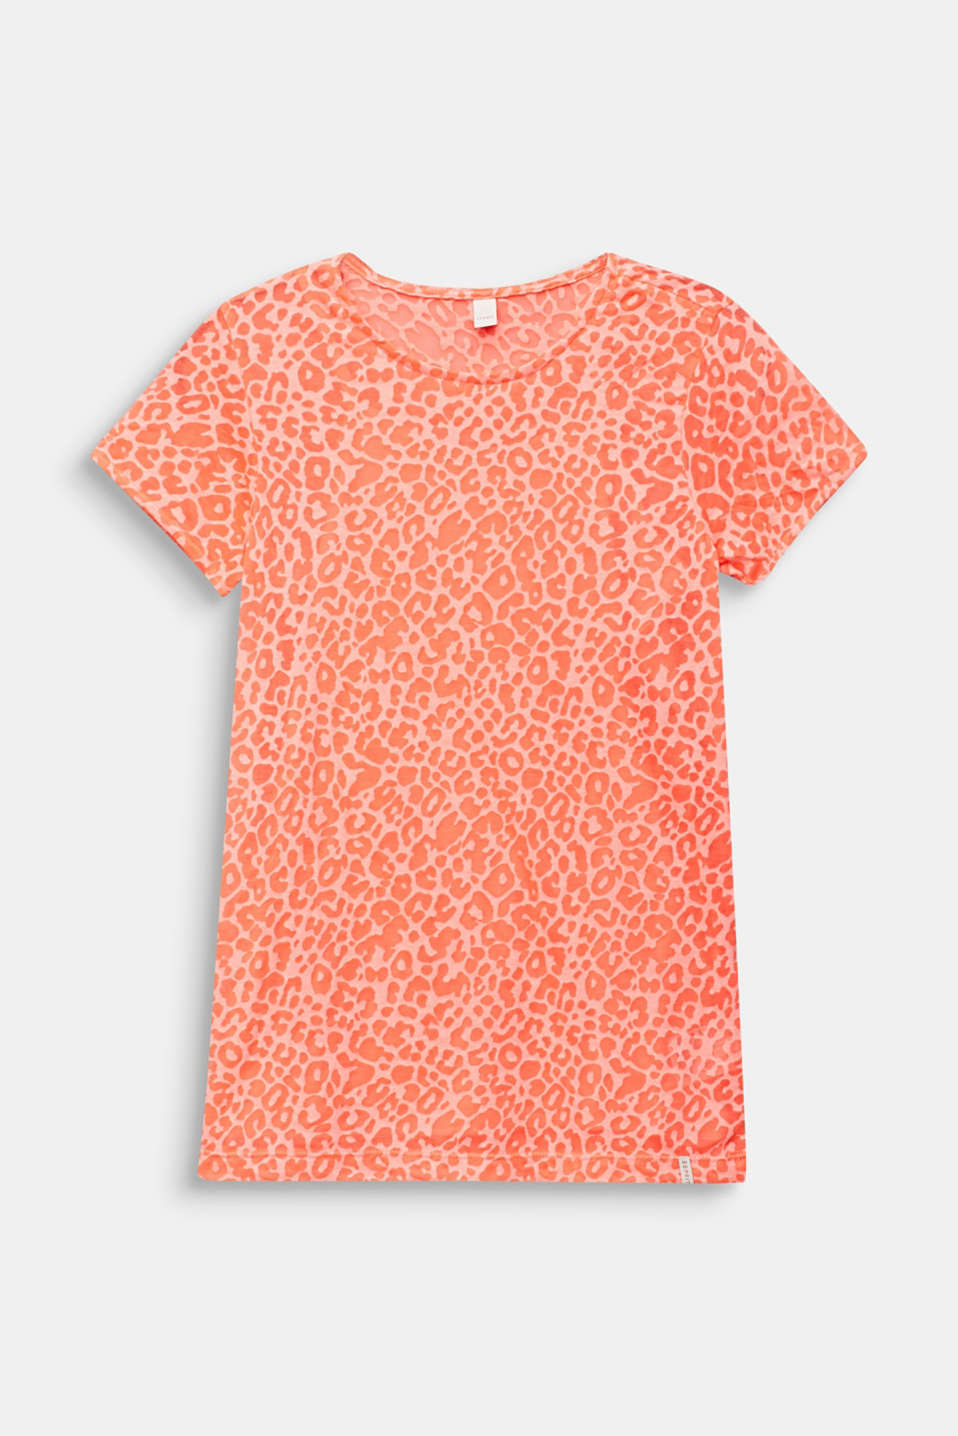 Esprit - 2-in-1 NEON T-shirt with leopard print